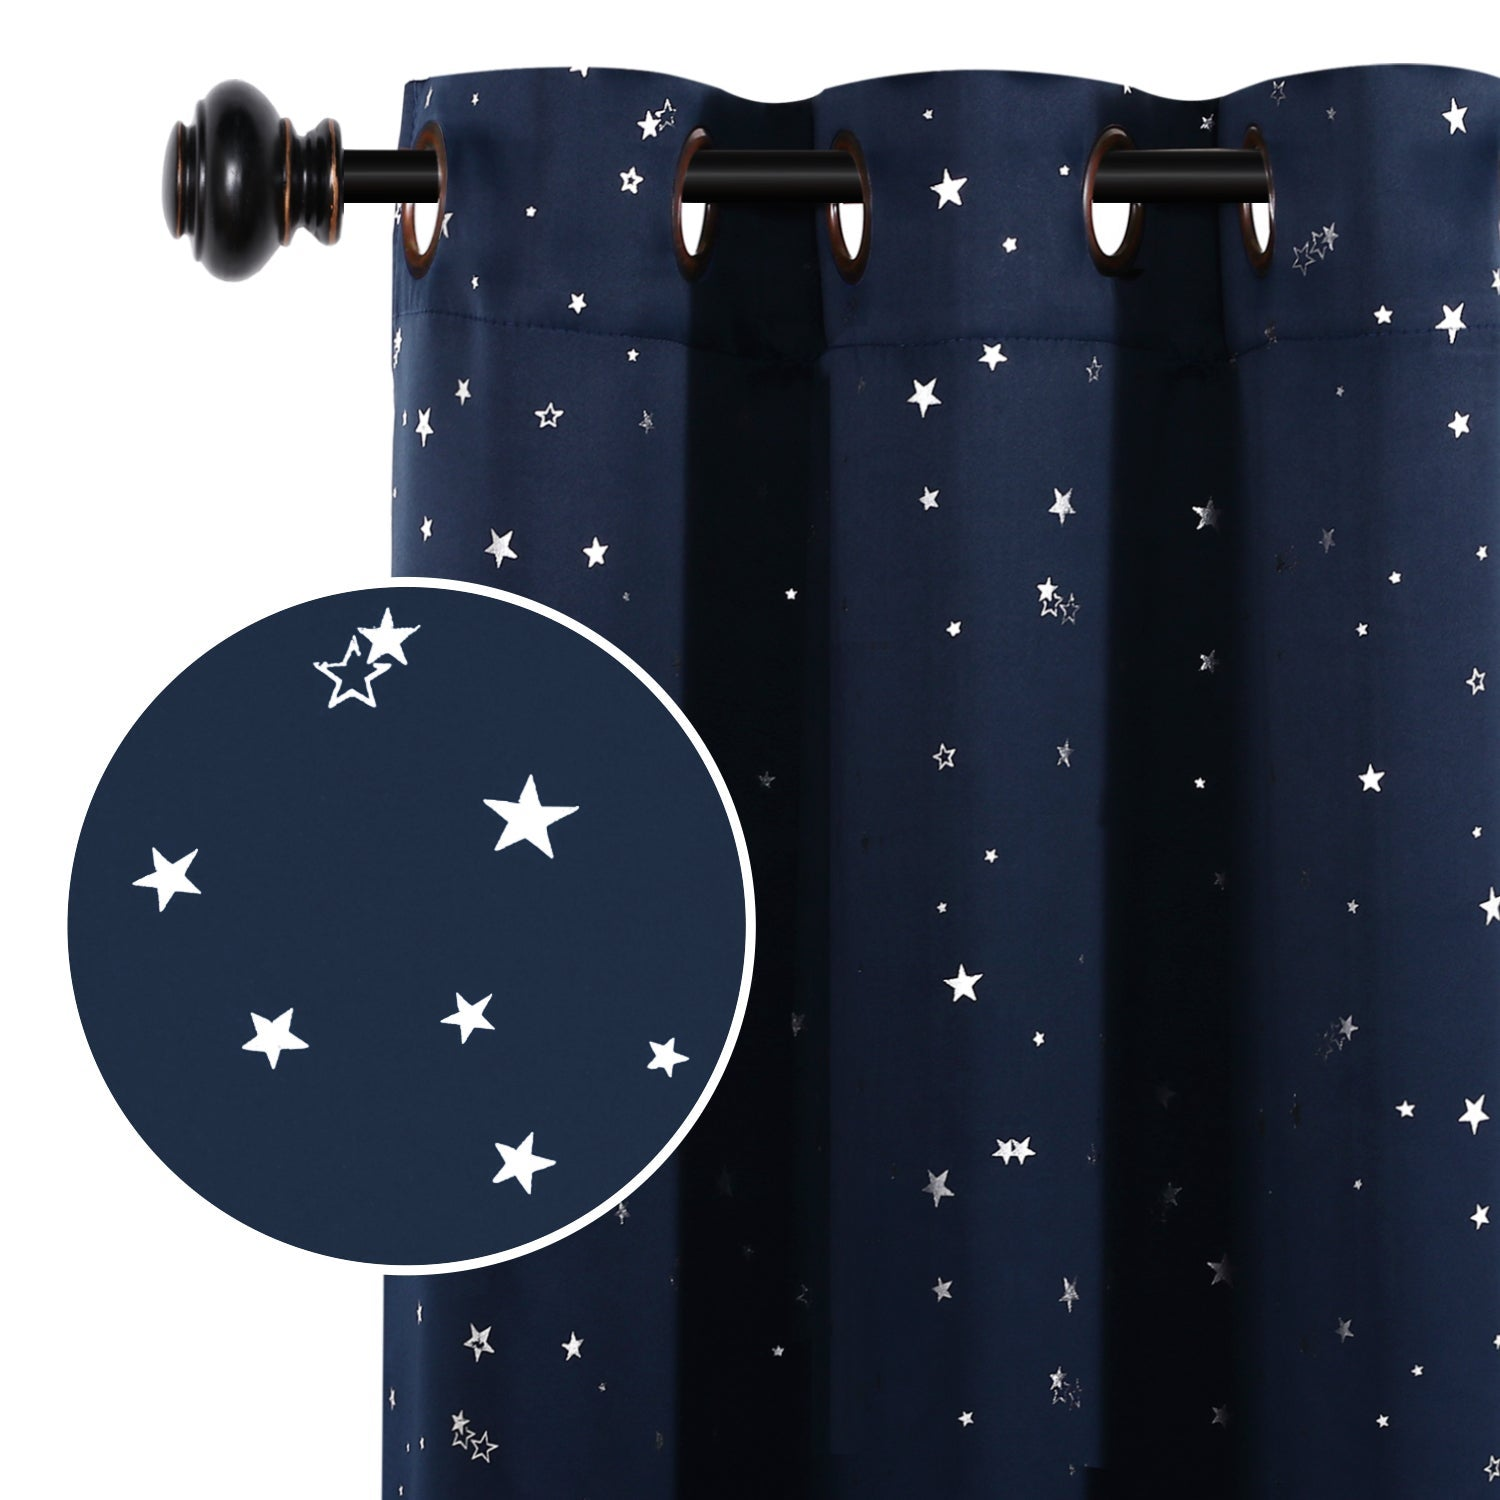 Blackout Star Curtain Kids Bedroom Blockout Curtain Thermal Curtain Sold 1 Panel